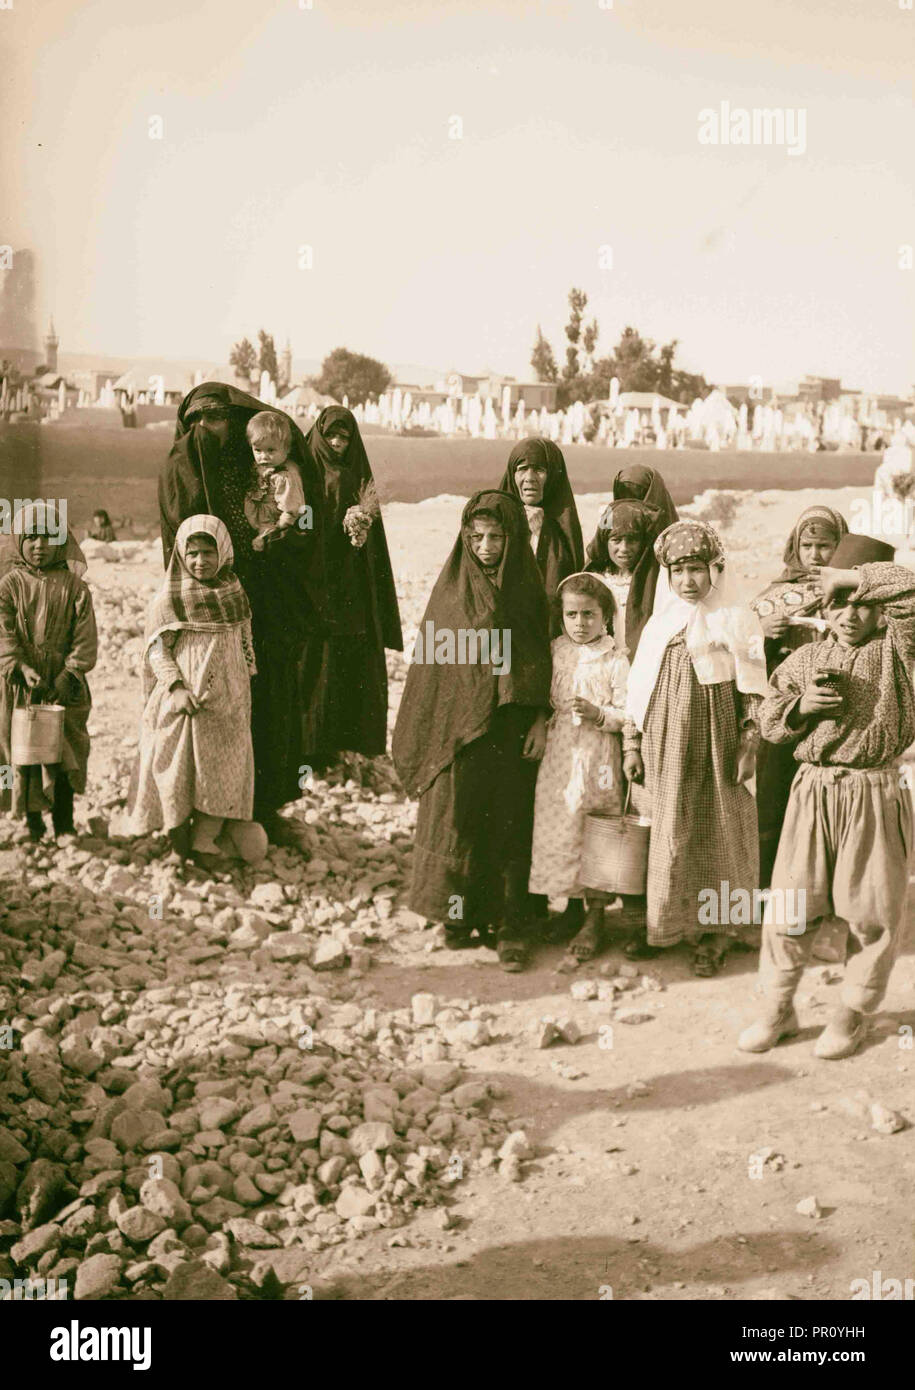 Unveiled Muslim women 1900 Middle East - Stock Image